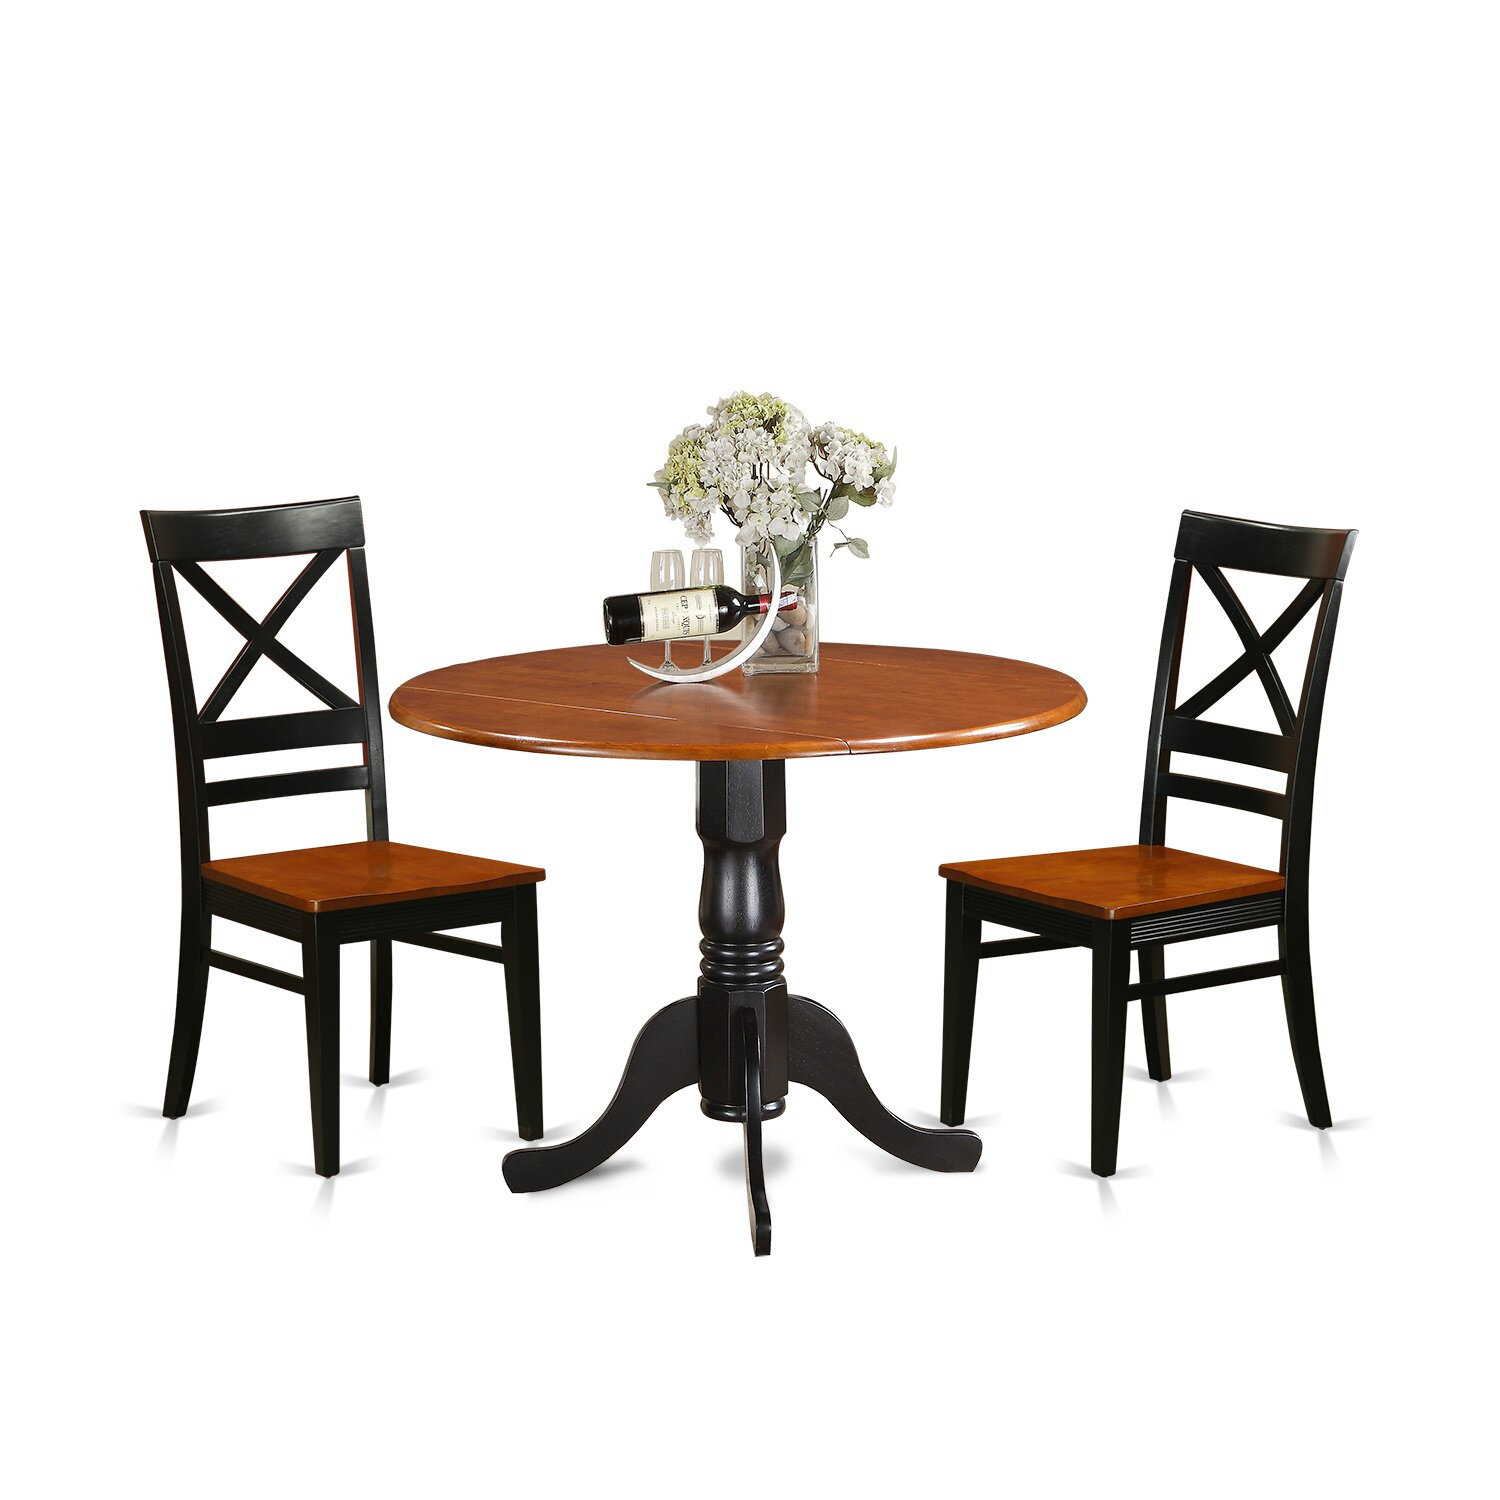 Dining Table Set For 2 Chairs 3 Piece Kitchen Room: 3 Piece Dining Set